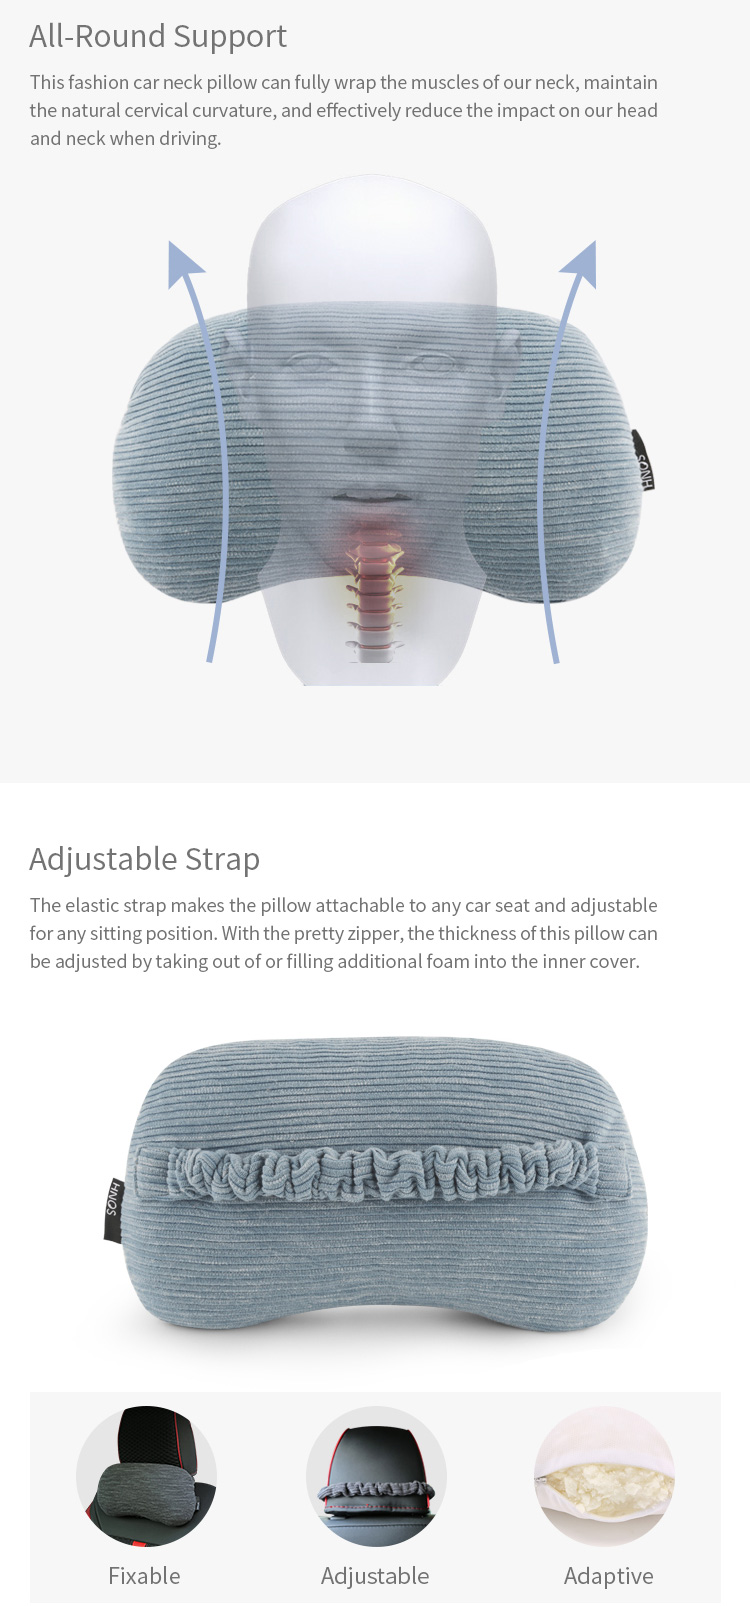 All-Round Support And Adjustable Strap Shredded Car Headrest Pillow Memory Foam Decorative Pillow For Driver